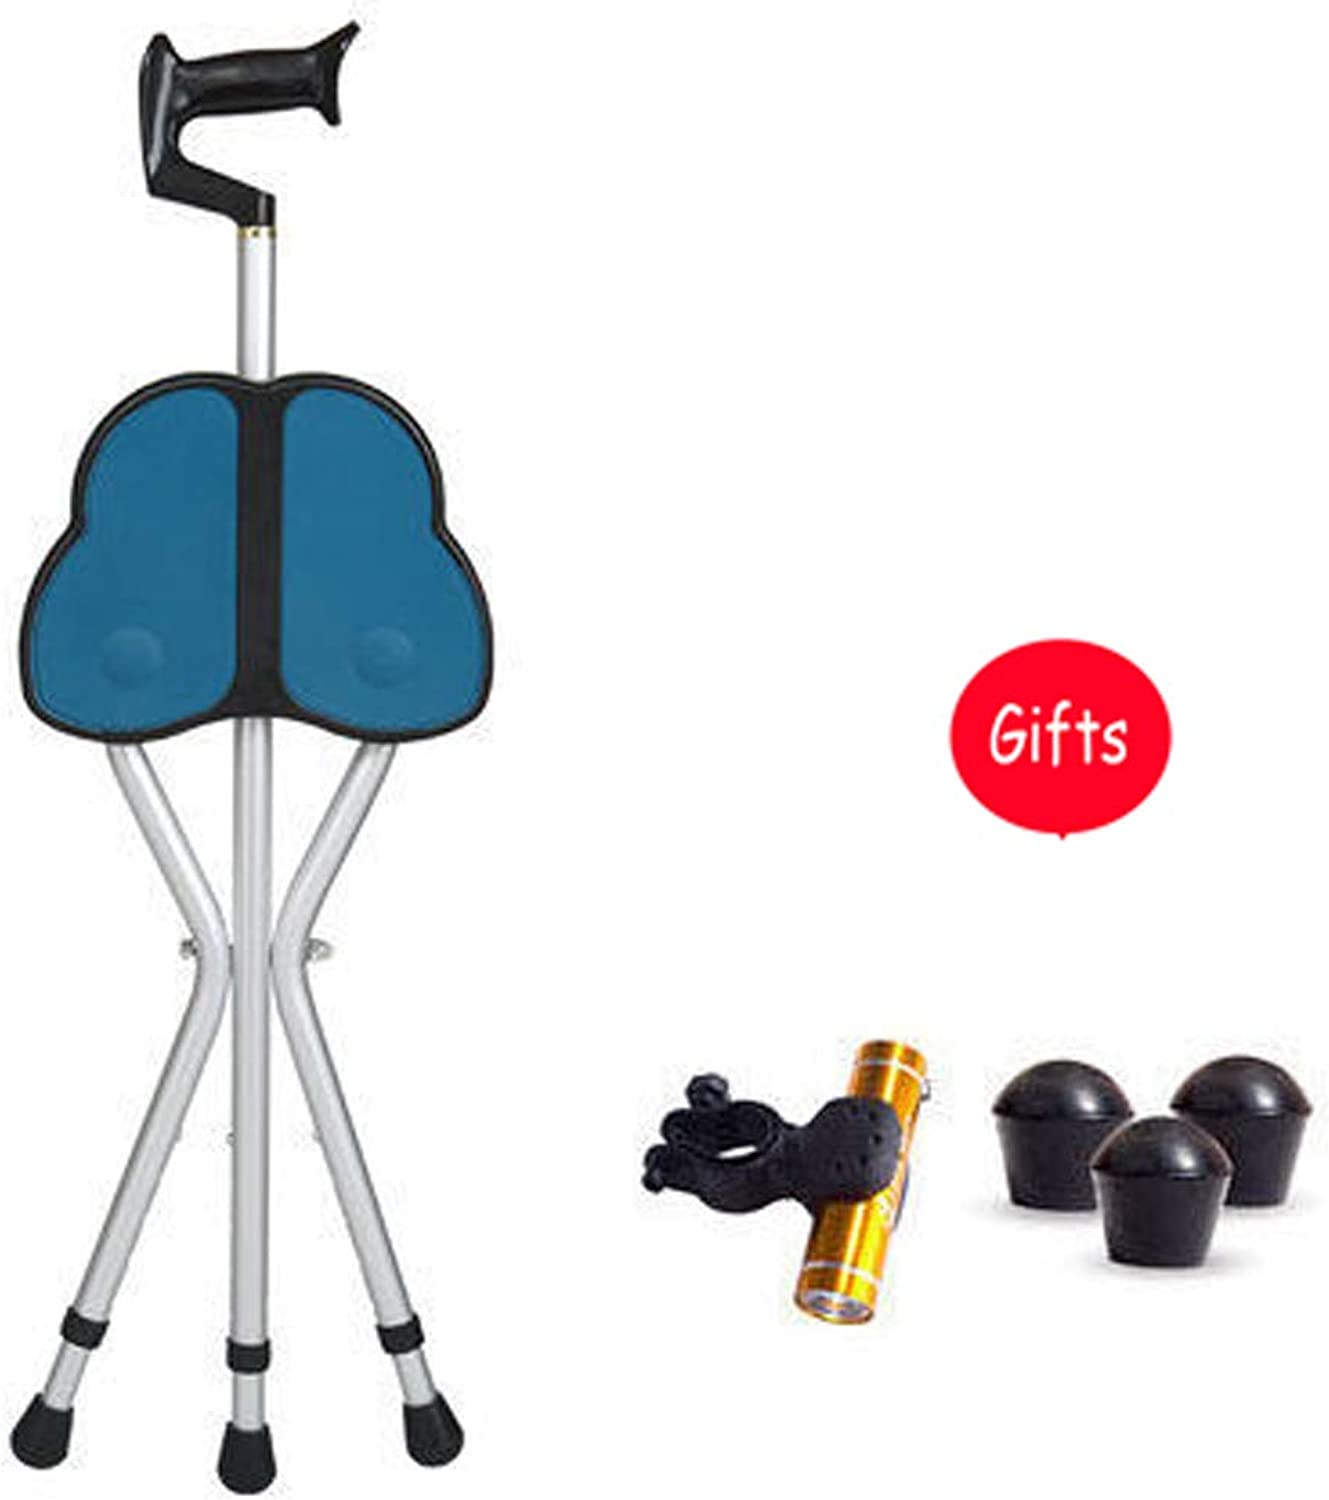 Cane Stool, 3 Legs Cane Seats, Crutch Chair Seat, 3 Legs Cane Seats, Walking Stick Chair Combo, Folding Walking Cane, with LED Light Lightweight and Adjustable,BigSittingBoardA